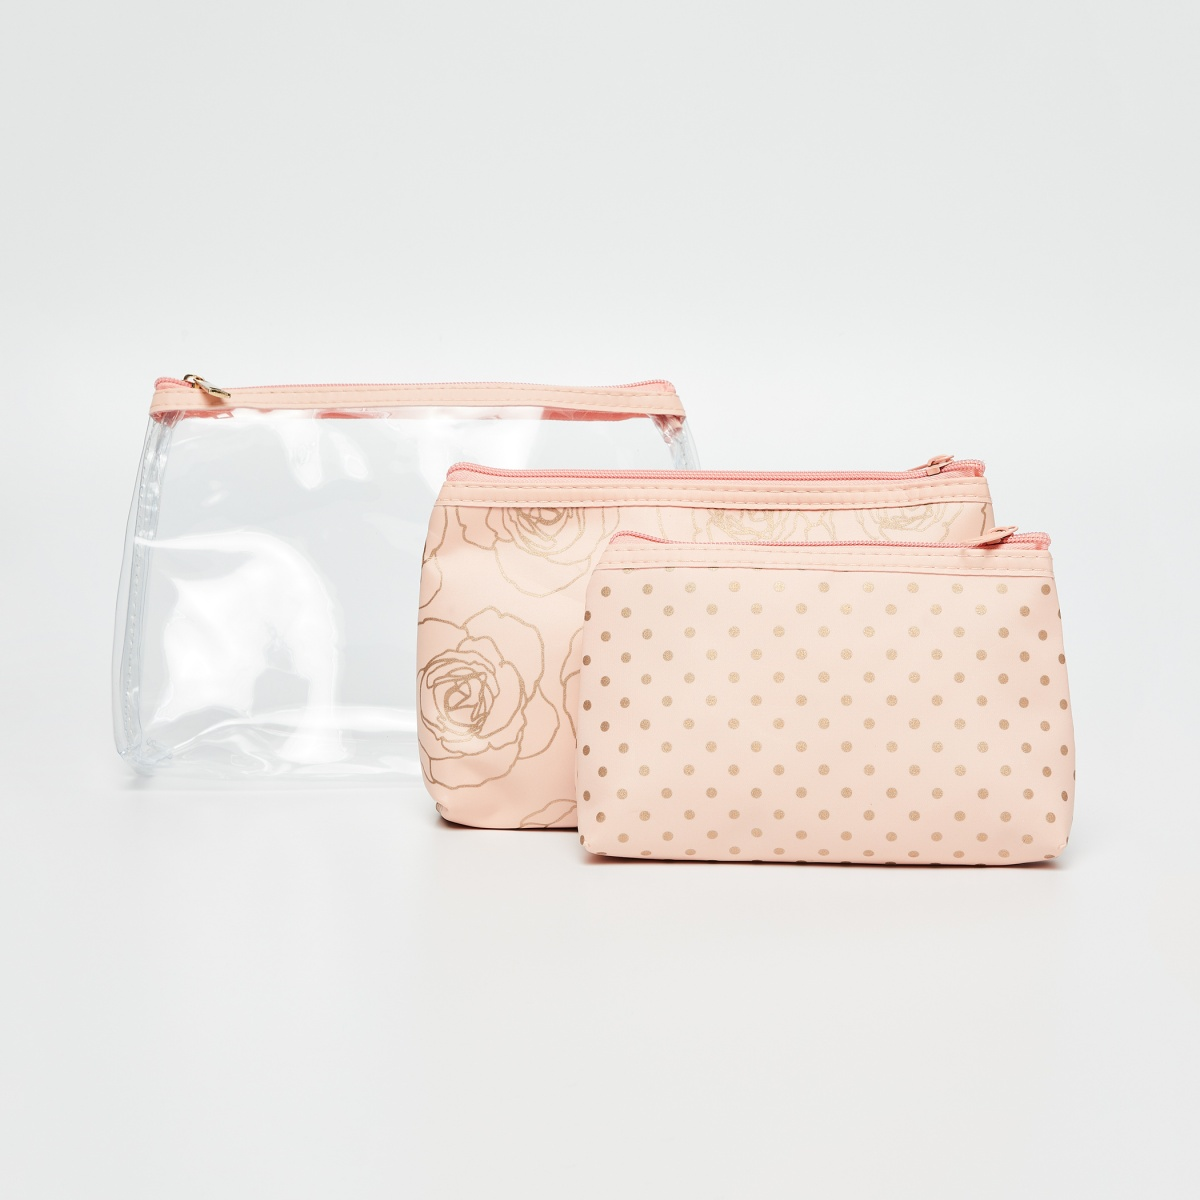 GINGER Printed Toiletry Pouch- 3 Pcs.